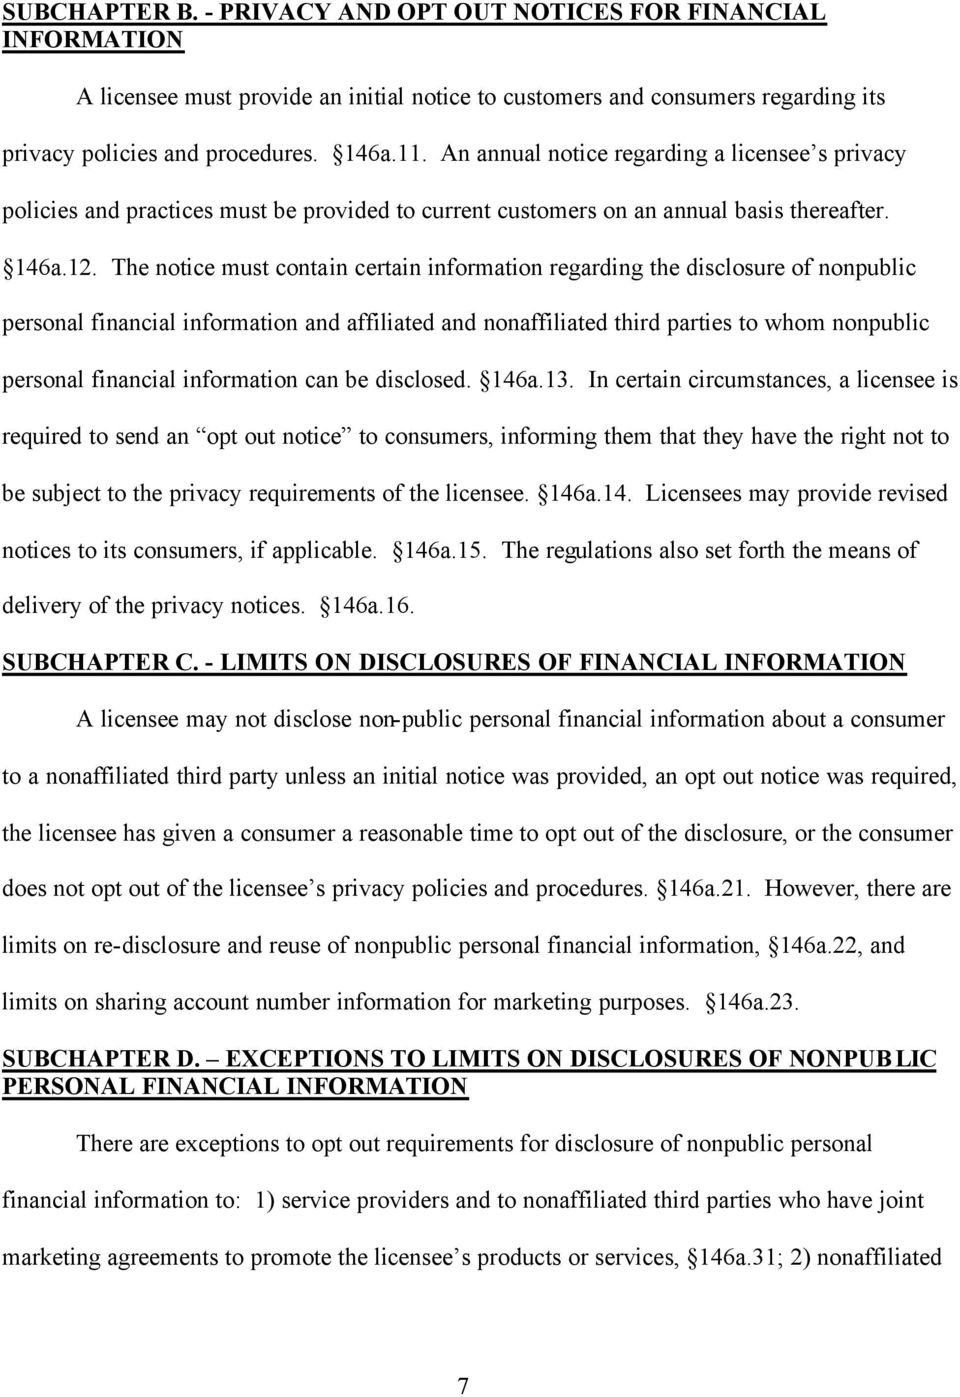 The notice must contain certain information regarding the disclosure of nonpublic personal financial information and affiliated and nonaffiliated third parties to whom nonpublic personal financial